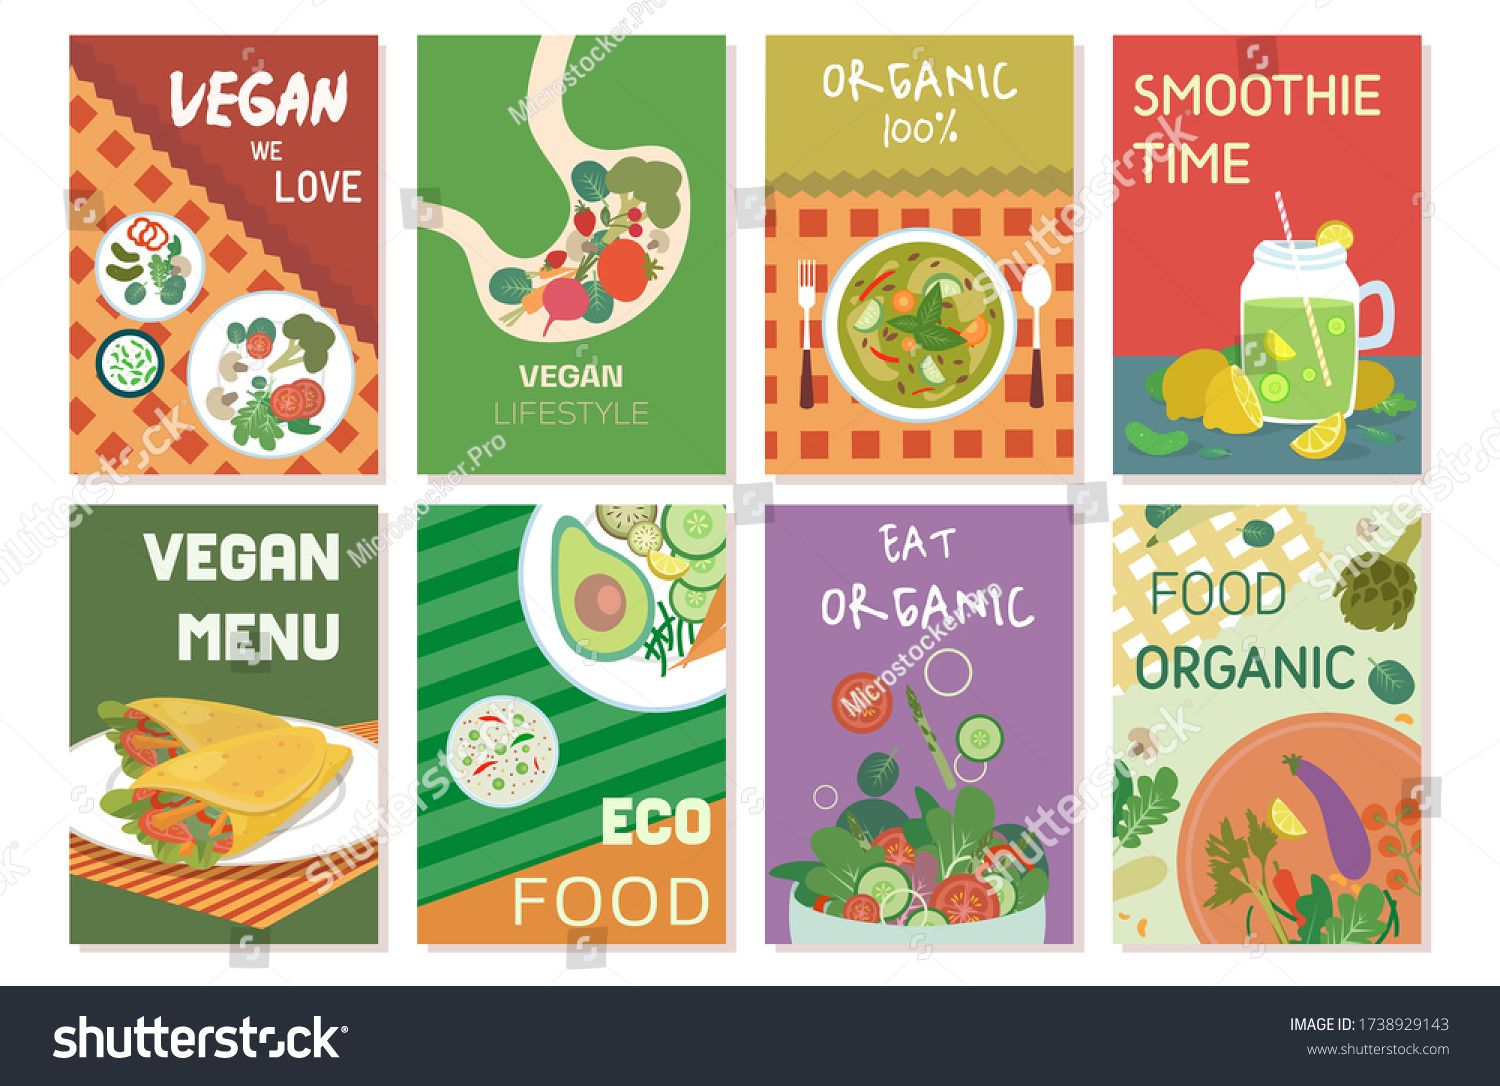 Set Of Vegan Food Colourful Banners Menu Vector Illustration Food And Drink Marketing Material And Advertisement Fl In 2020 Vegan Recipes Menu Illustration Vegan Menu